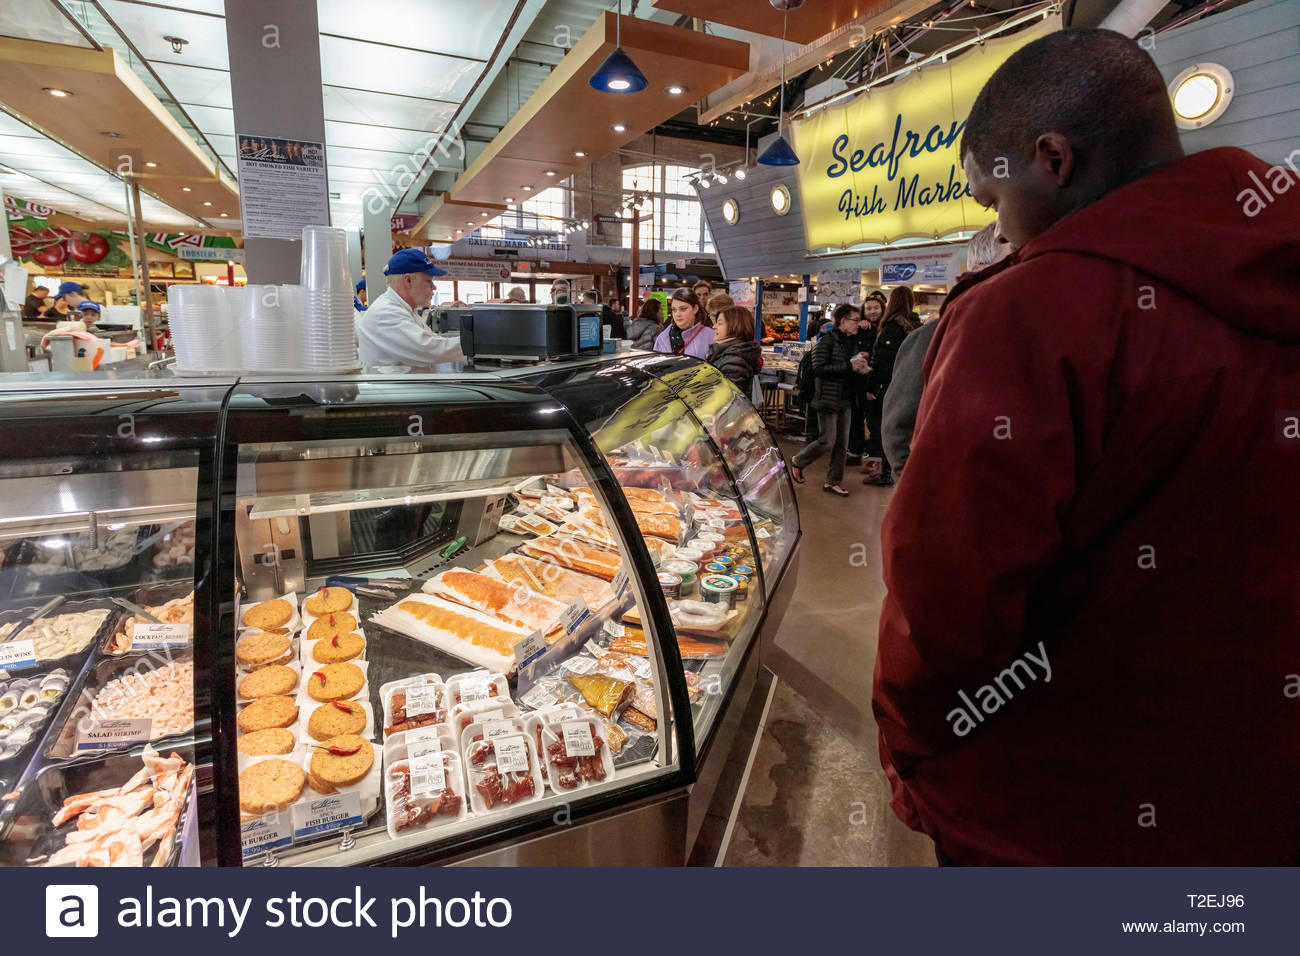 shopping-for-groceries-in-st-lawrence-ma